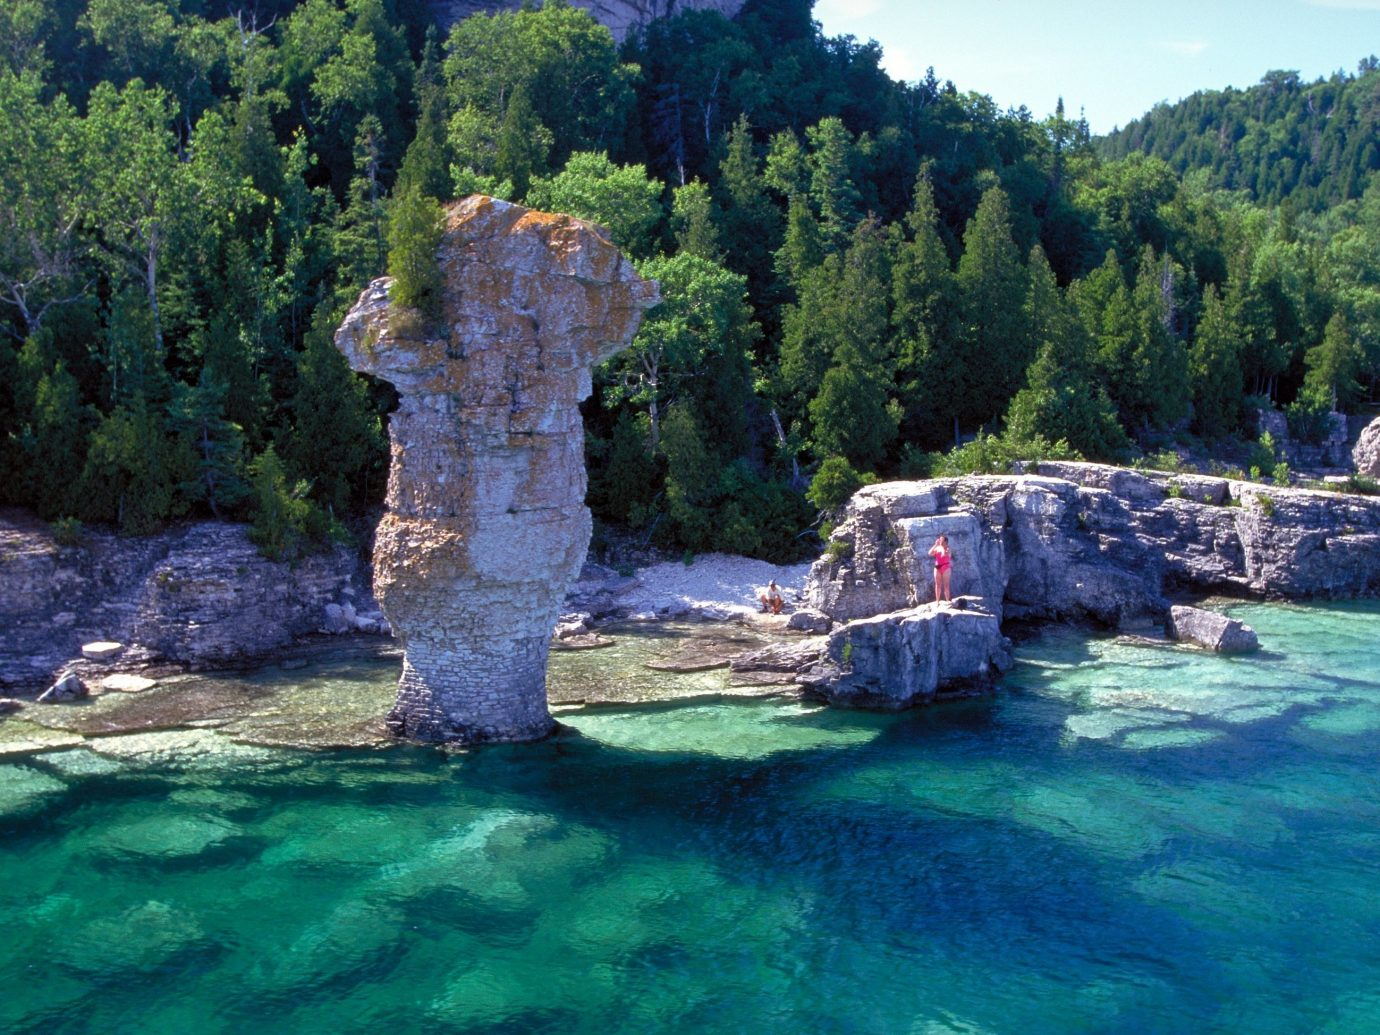 Fathom Five National Marine Park National Parks Outdoors + Adventure Trip Ideas tree outdoor water Nature landform geographical feature River Sea rock water feature Forest bay park terrain cliff rapid Lagoon national park surrounded wooded